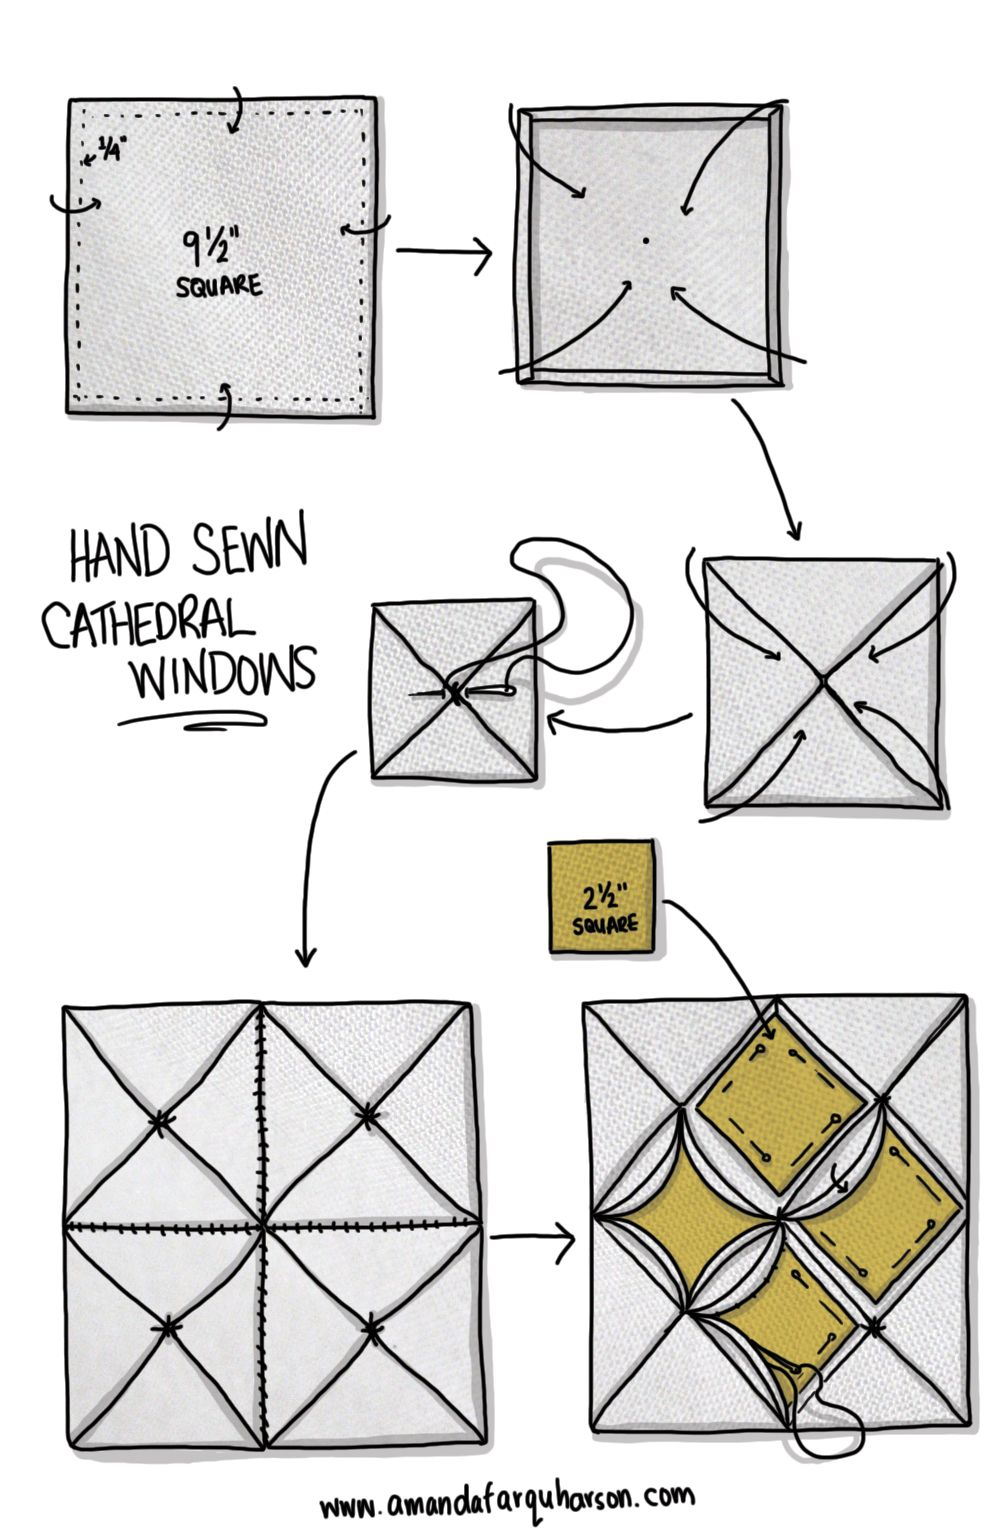 Hand Sewn Cathedral Windows Tutorial Cathedral Windows